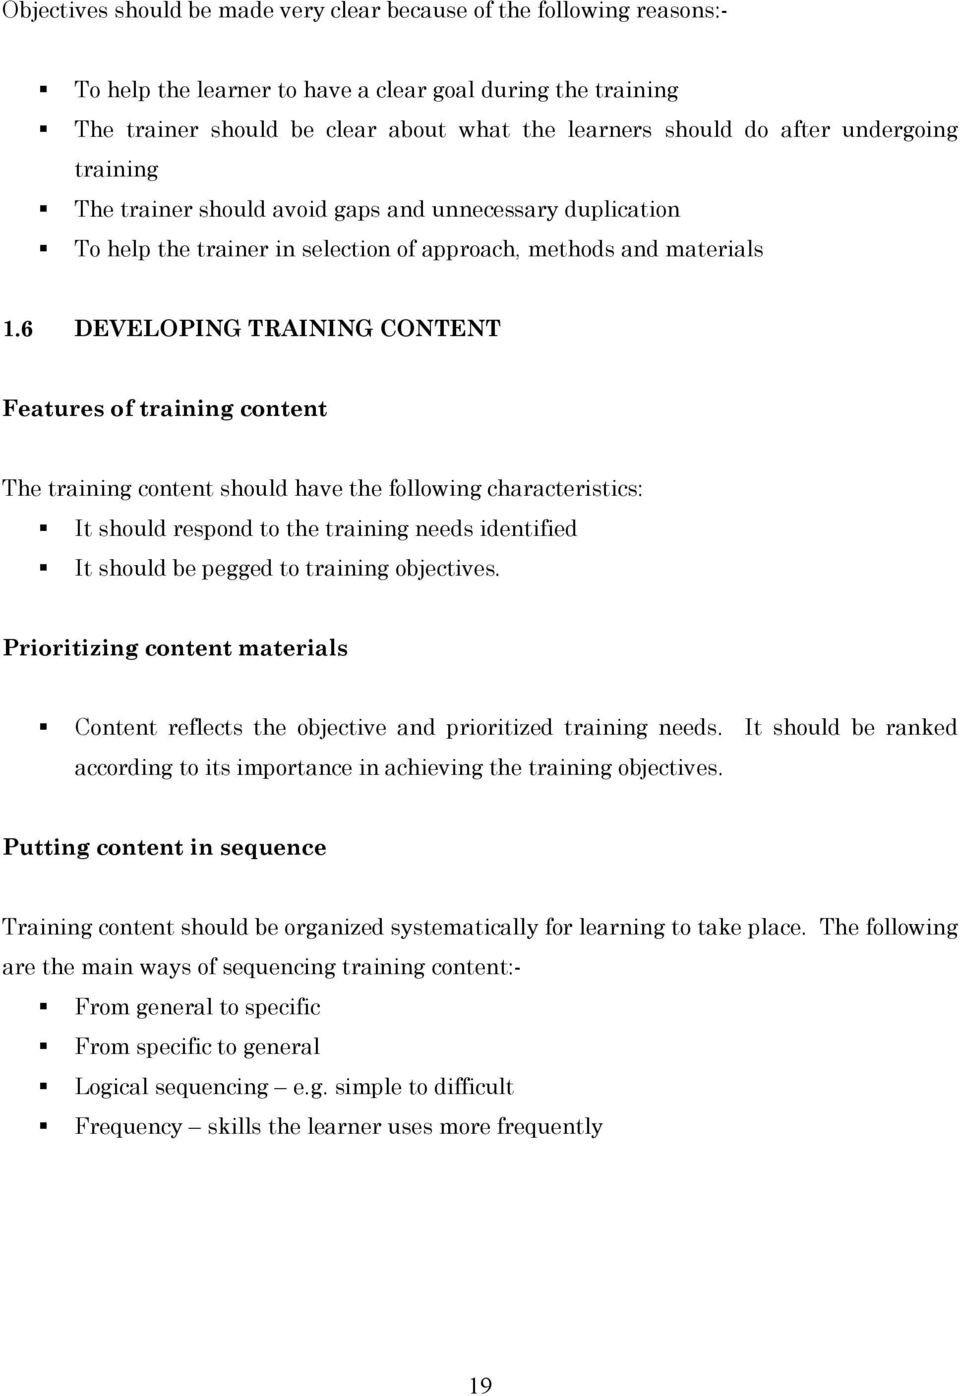 6 DEVELOPING TRAINING CONTENT Features of training content The training content should have the following characteristics: It should respond to the training needs identified It should be pegged to